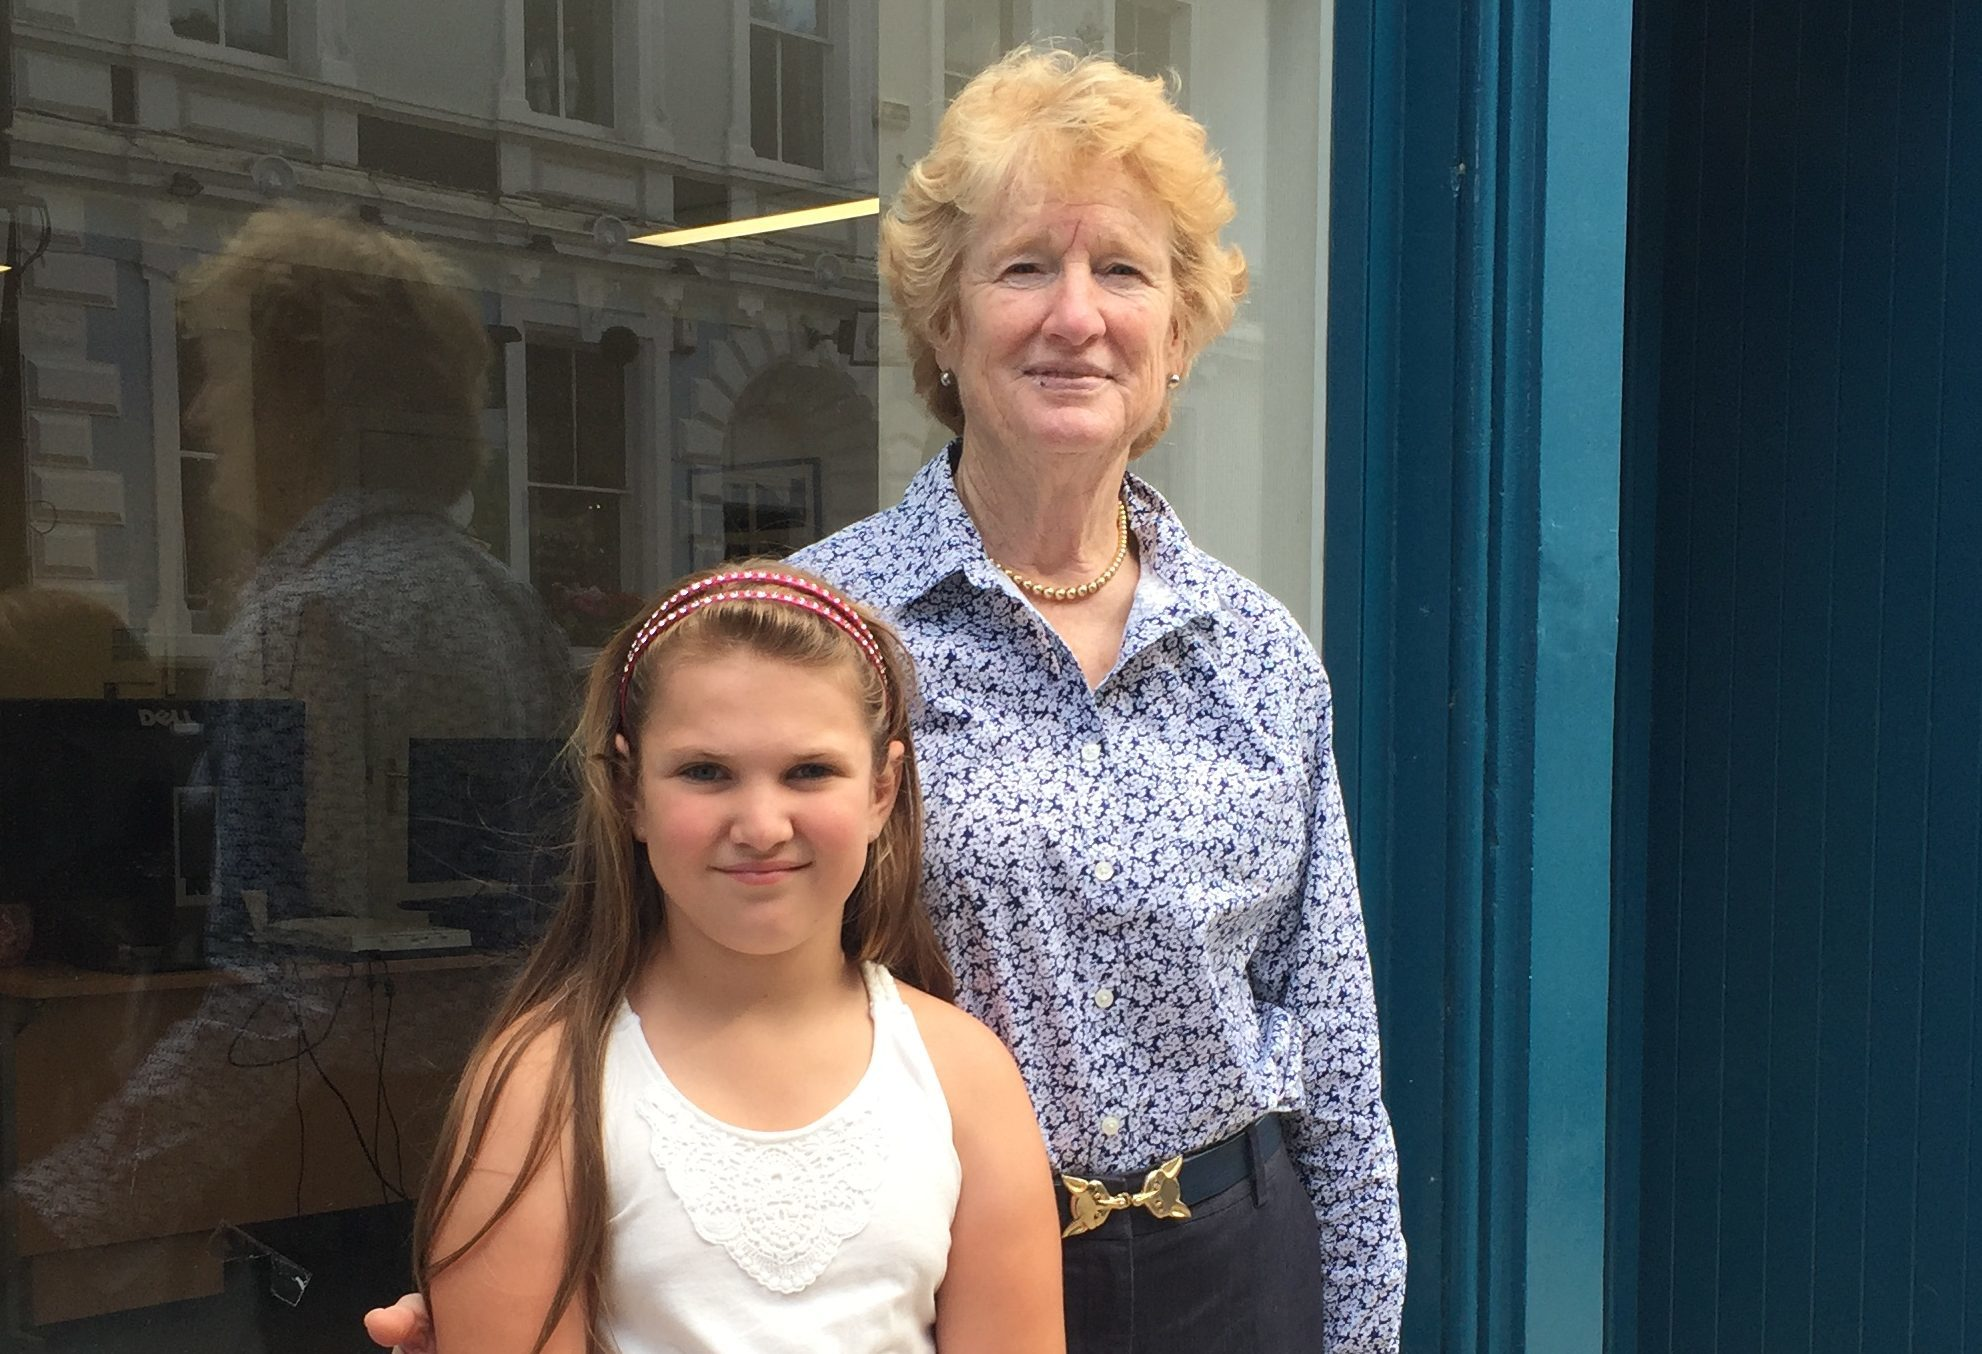 Betsey Reeves visited Aberfeldy with her granddaughter Lizzie.